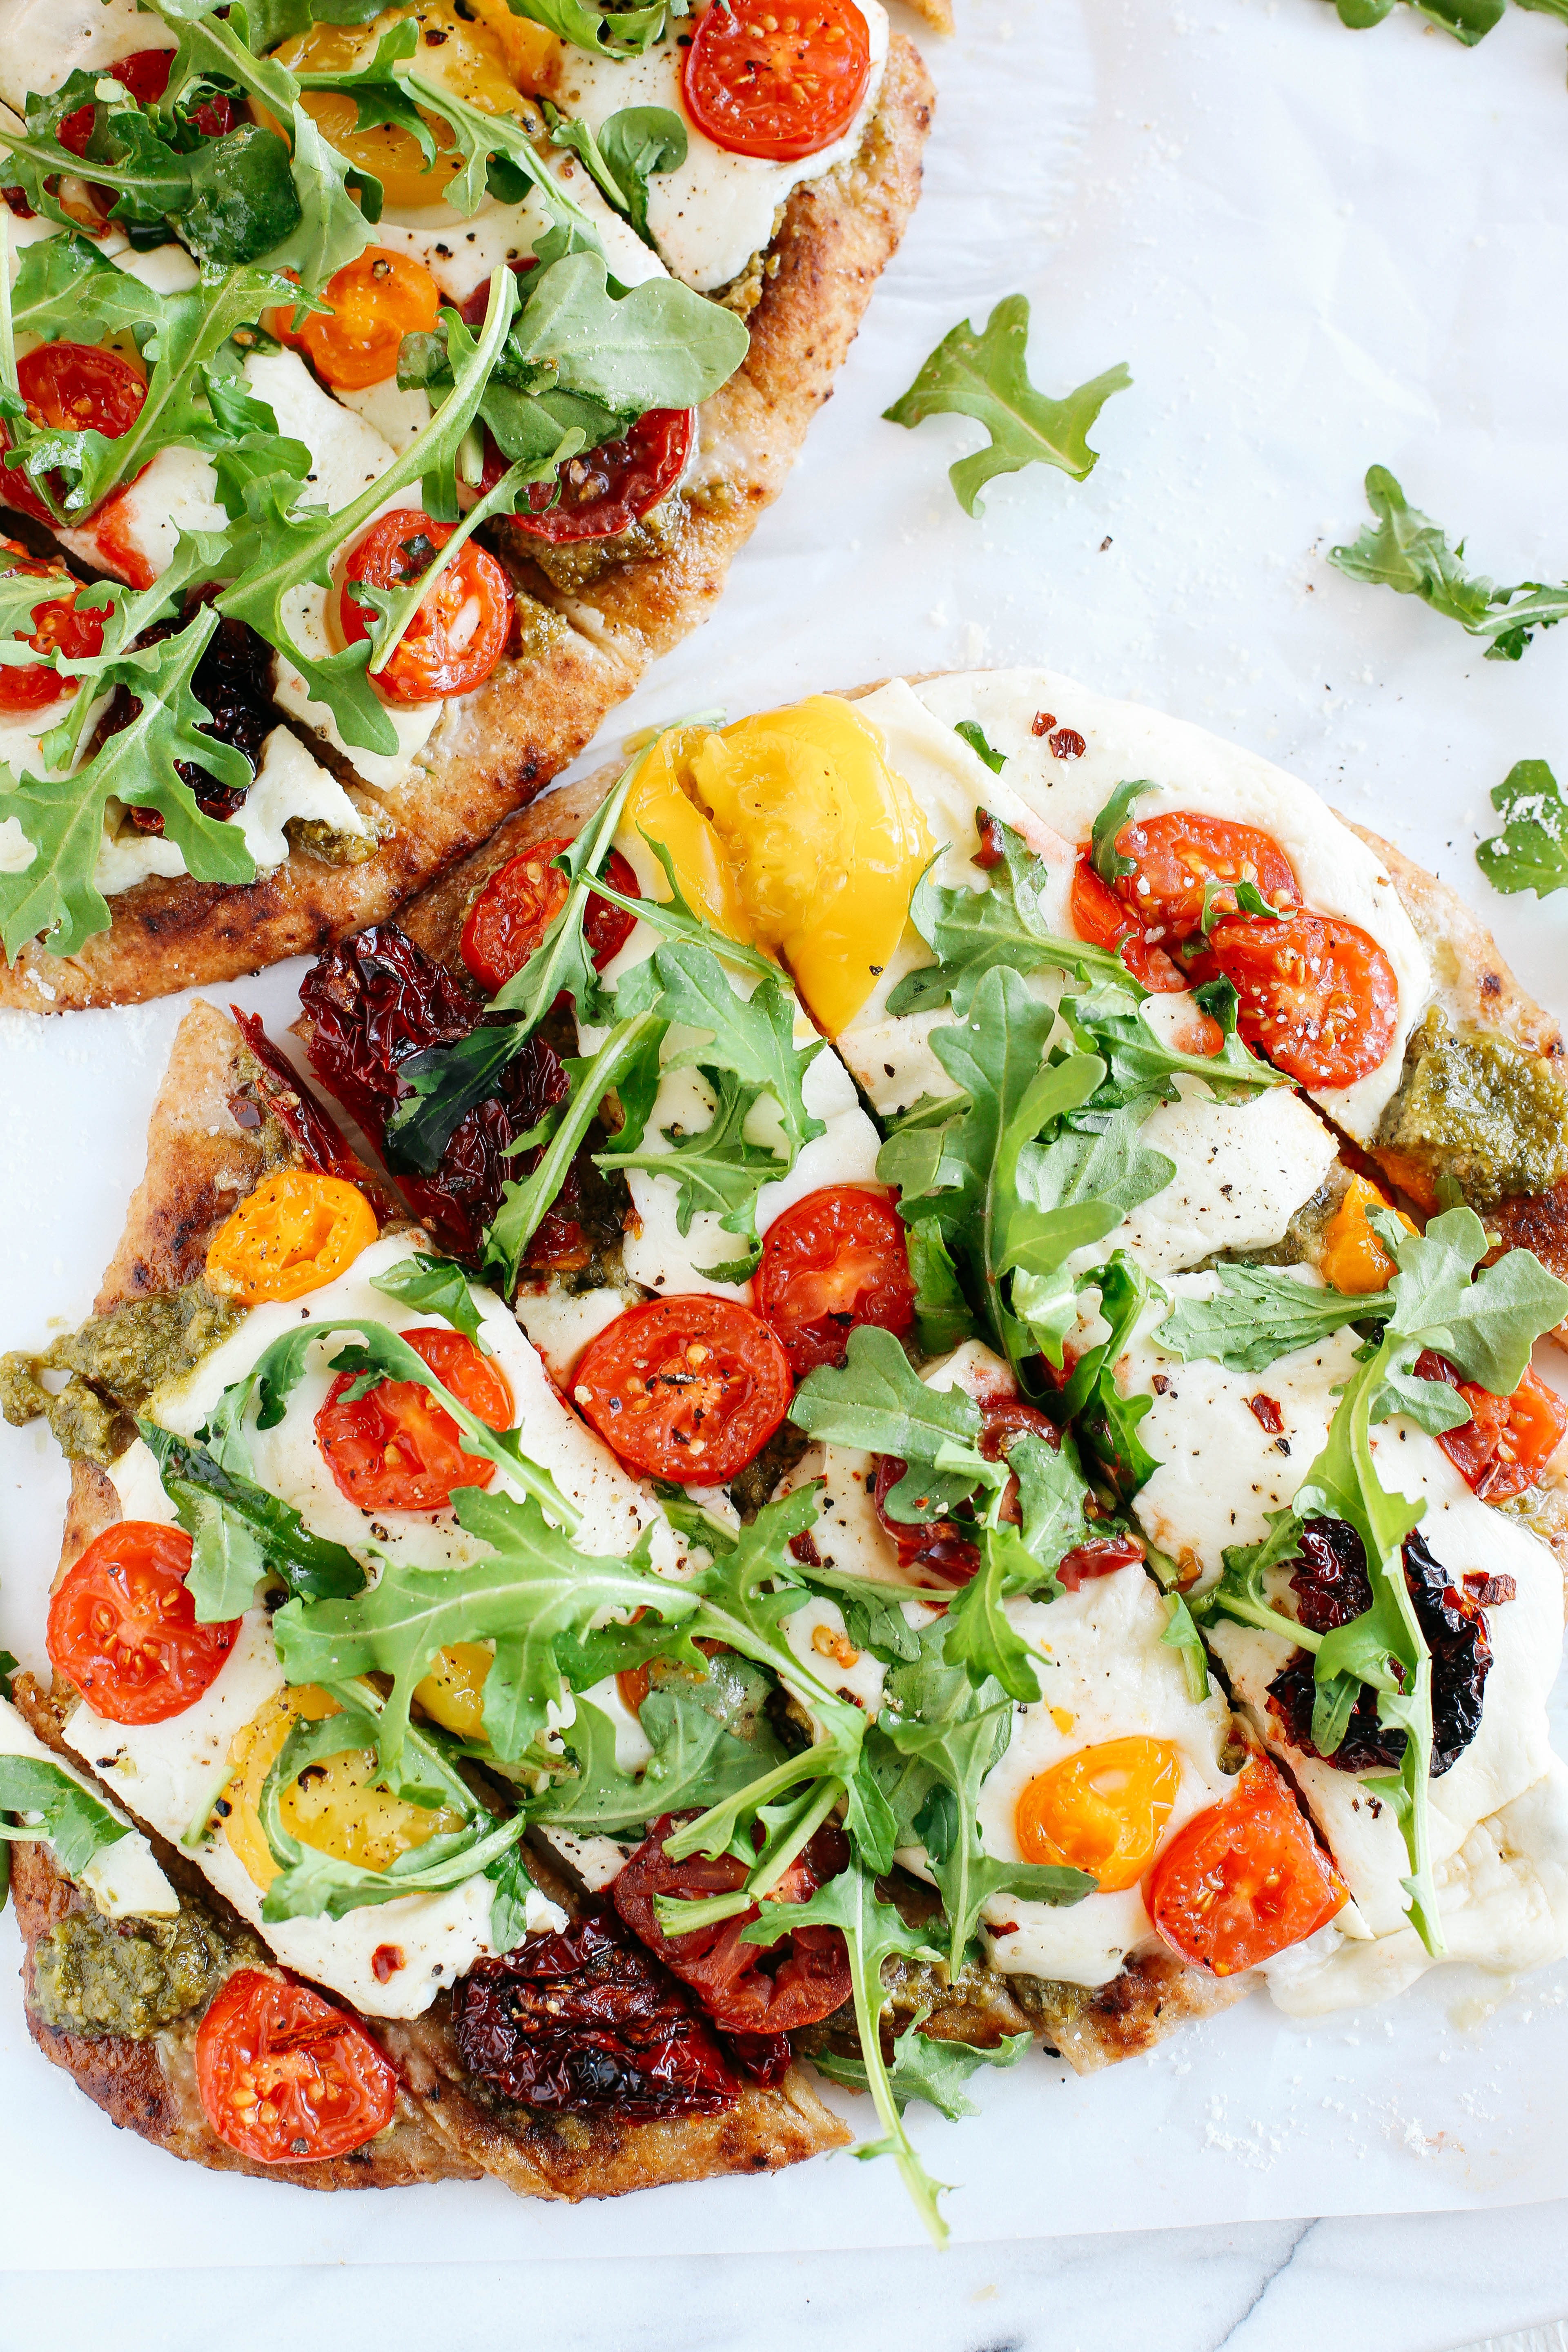 EASY garlicky pesto flatbread pizzas full of fresh tomatoes, basil and arugula for a flavorful weeknight dinner that can be ready in just 15 minutes!